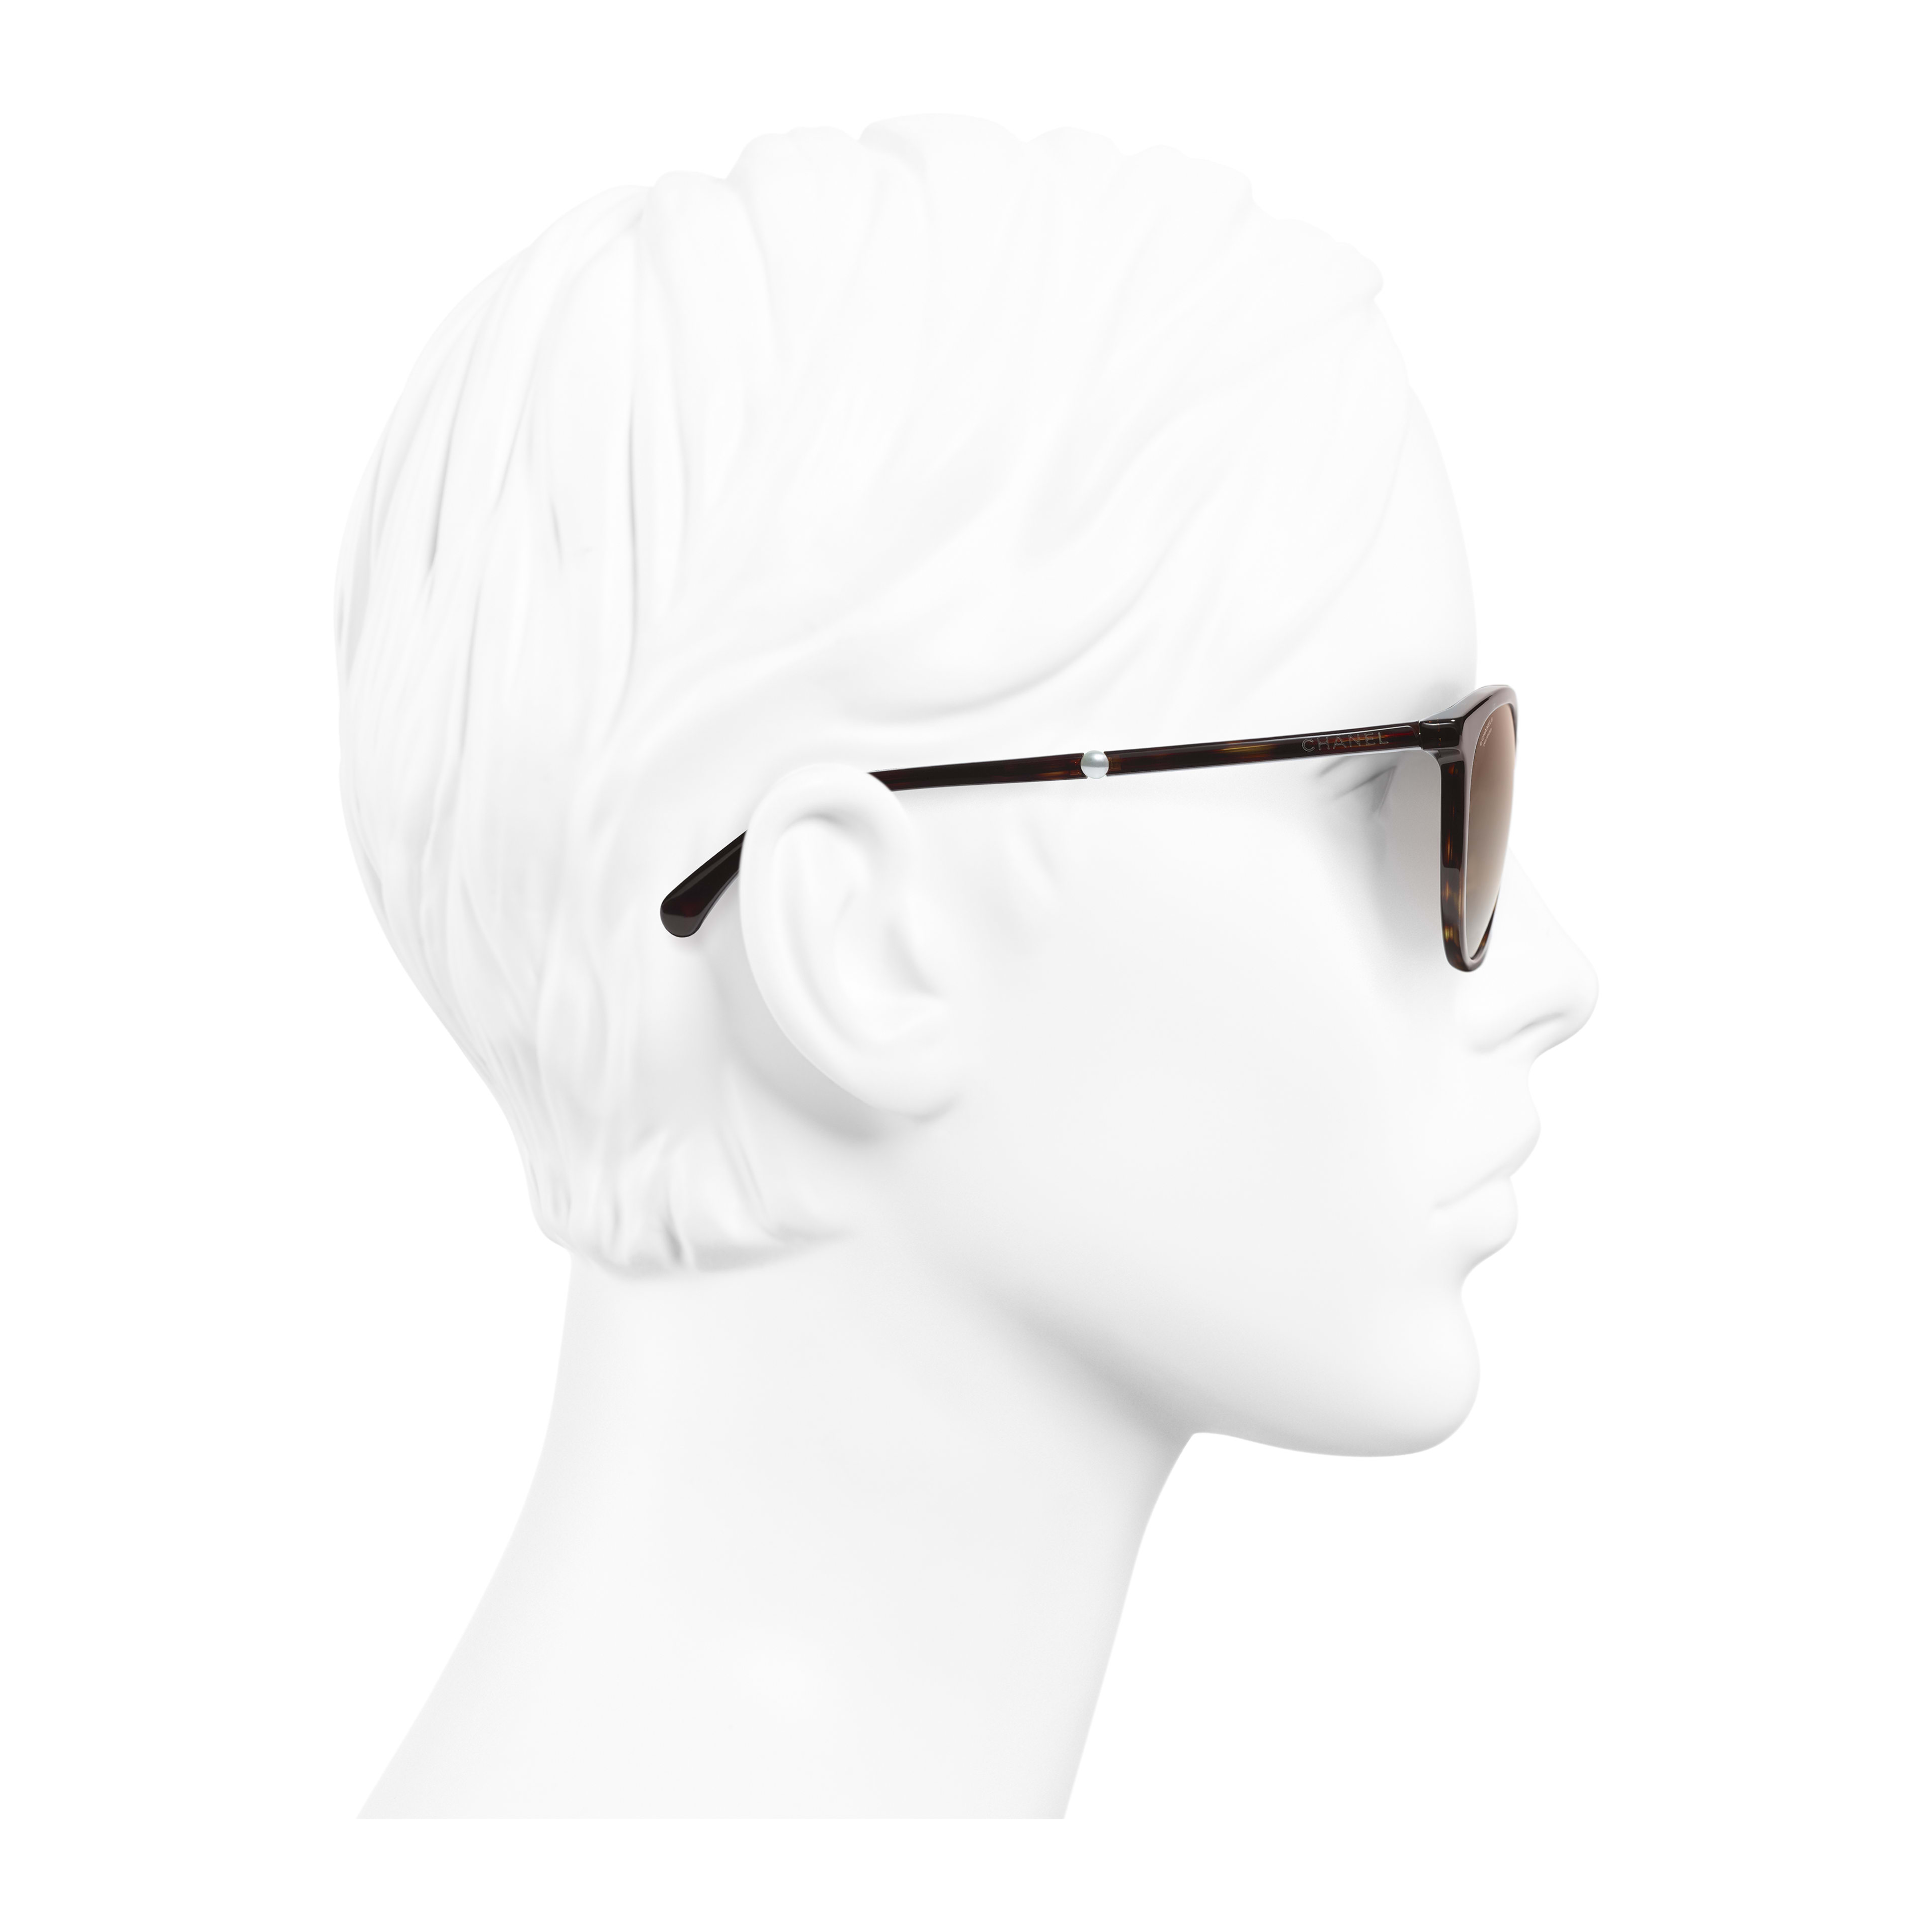 Butterfly Sunglasses - Dark Tortoise - Acetate & Imitation Pearls - Polarized Lenses - Worn side view - see full sized version